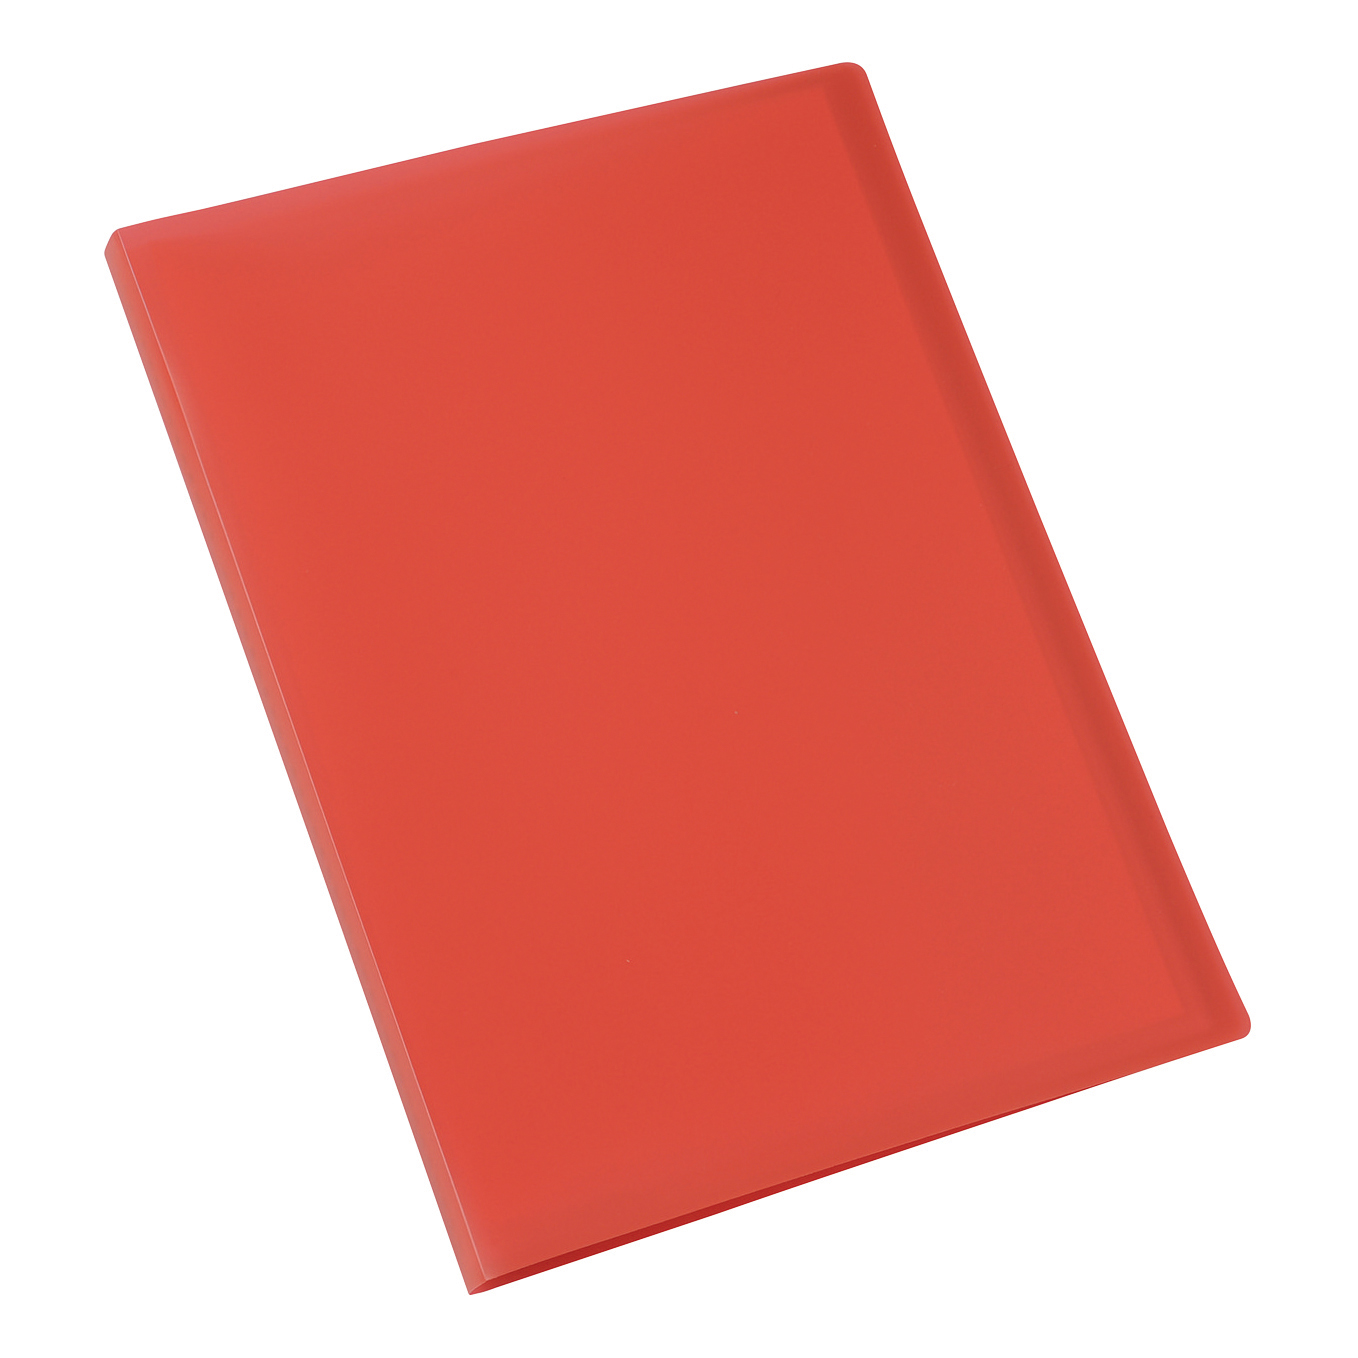 Display Books 5 Star Office Display Book Soft Cover Lightweight Polypropylene 40 Pockets A4 Red